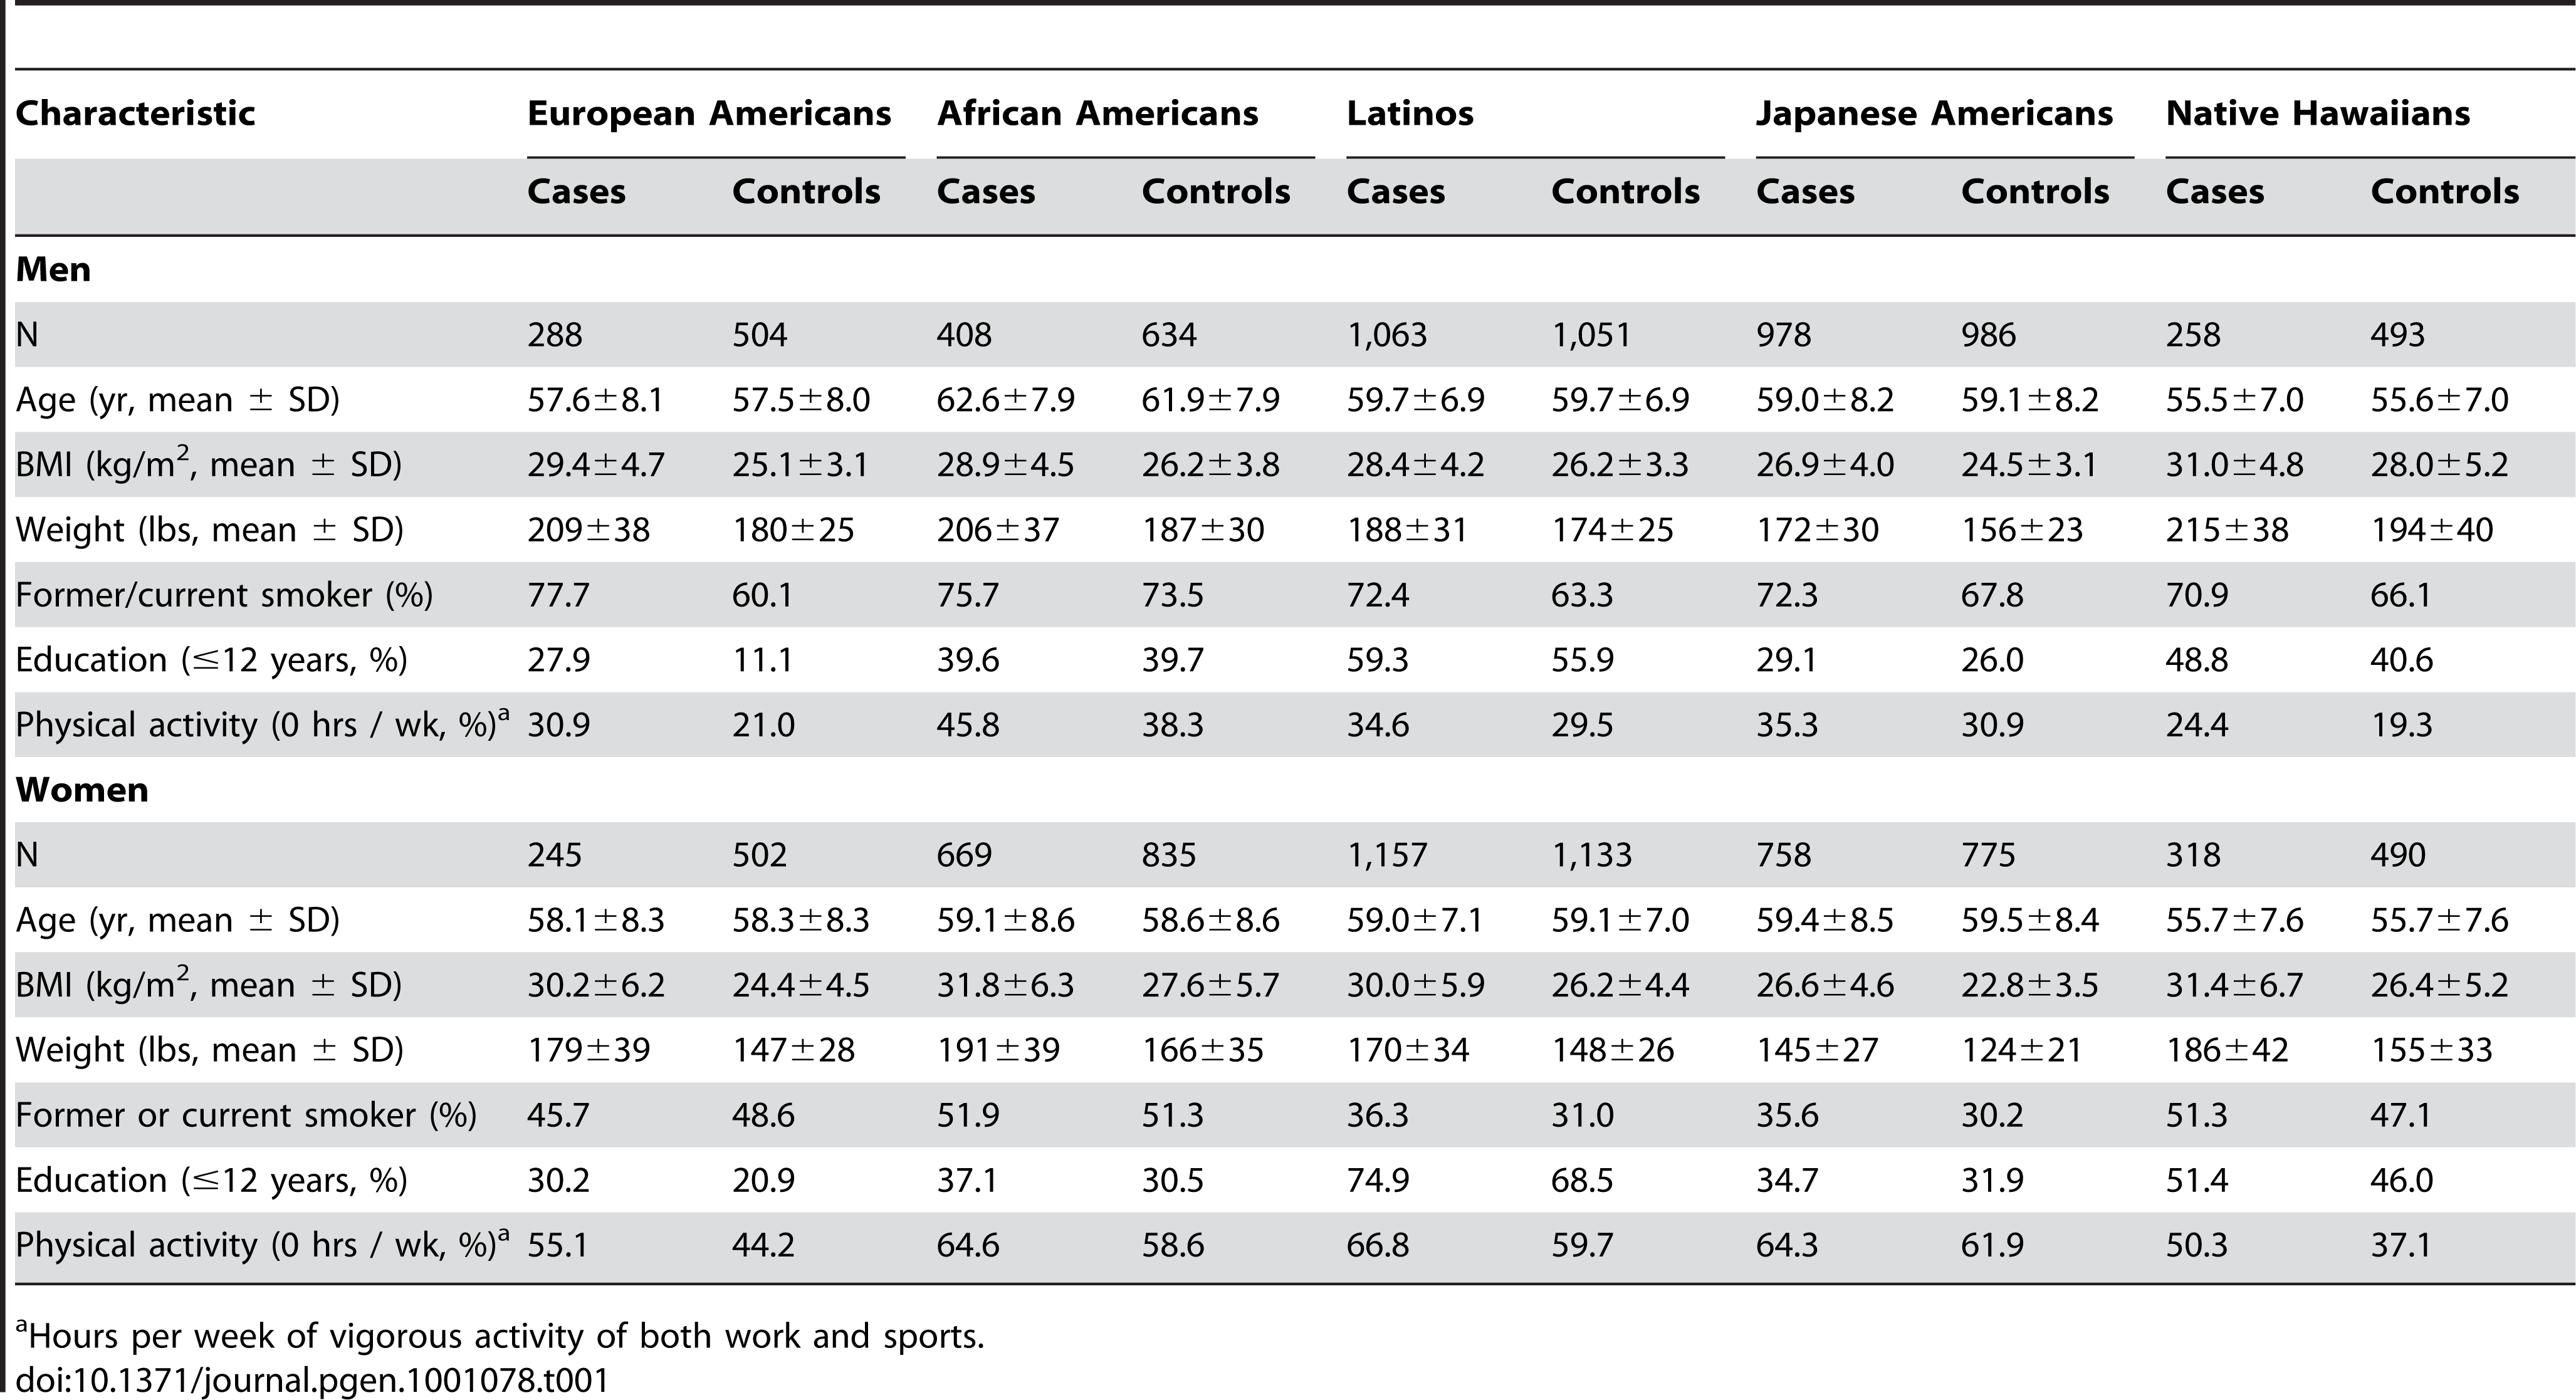 The descriptive characteristics of type 2 diabetes cases and controls in the MEC at baseline by racial/ethnic group and sex.